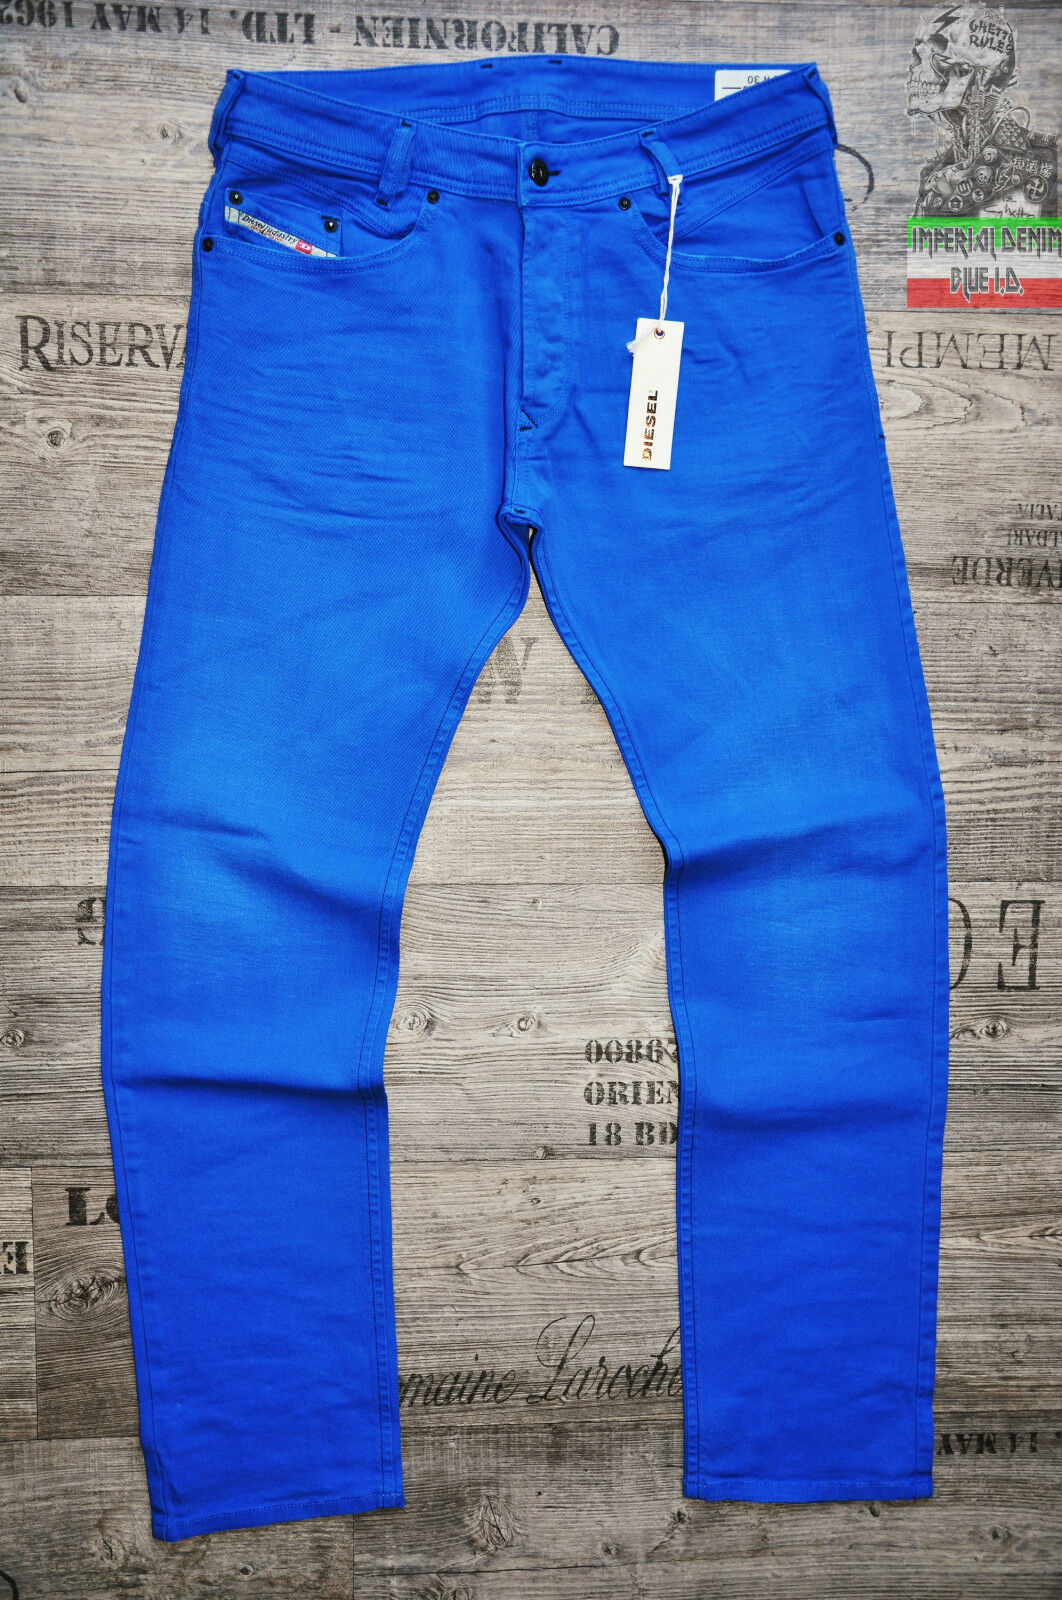 DIESEL IAKOP 111D 32 33 34 36 L32 SLIM TAPErot TAPErot TAPErot MENS JEANS HOT Blau NEW STRETCH f61951